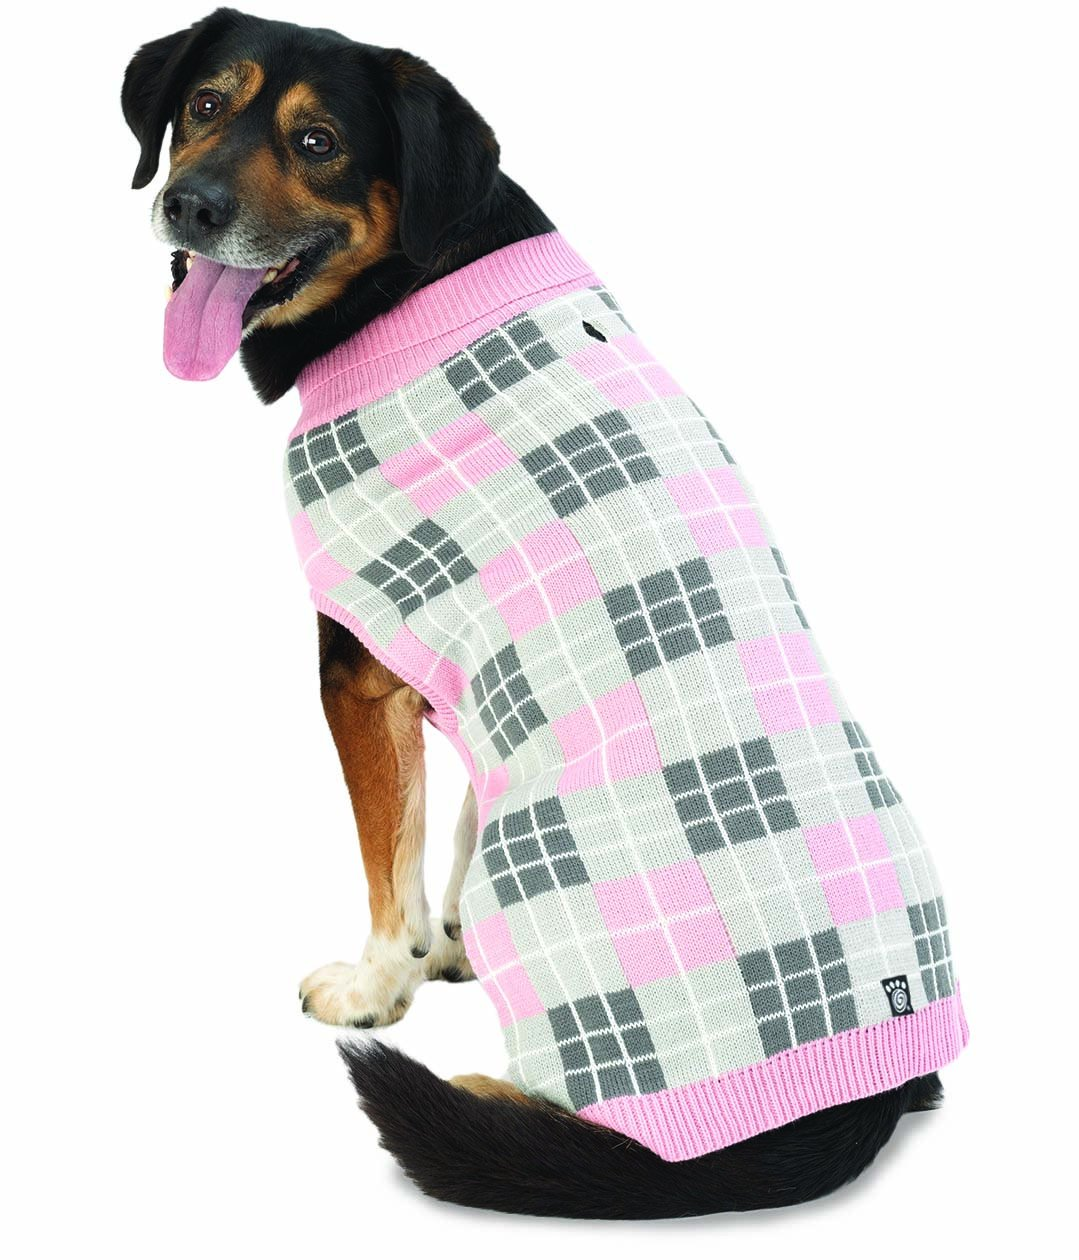 Pet Rageous 9501PMD Piper's Plaid Sweater, Medium, Pink Plaid by PetRageous